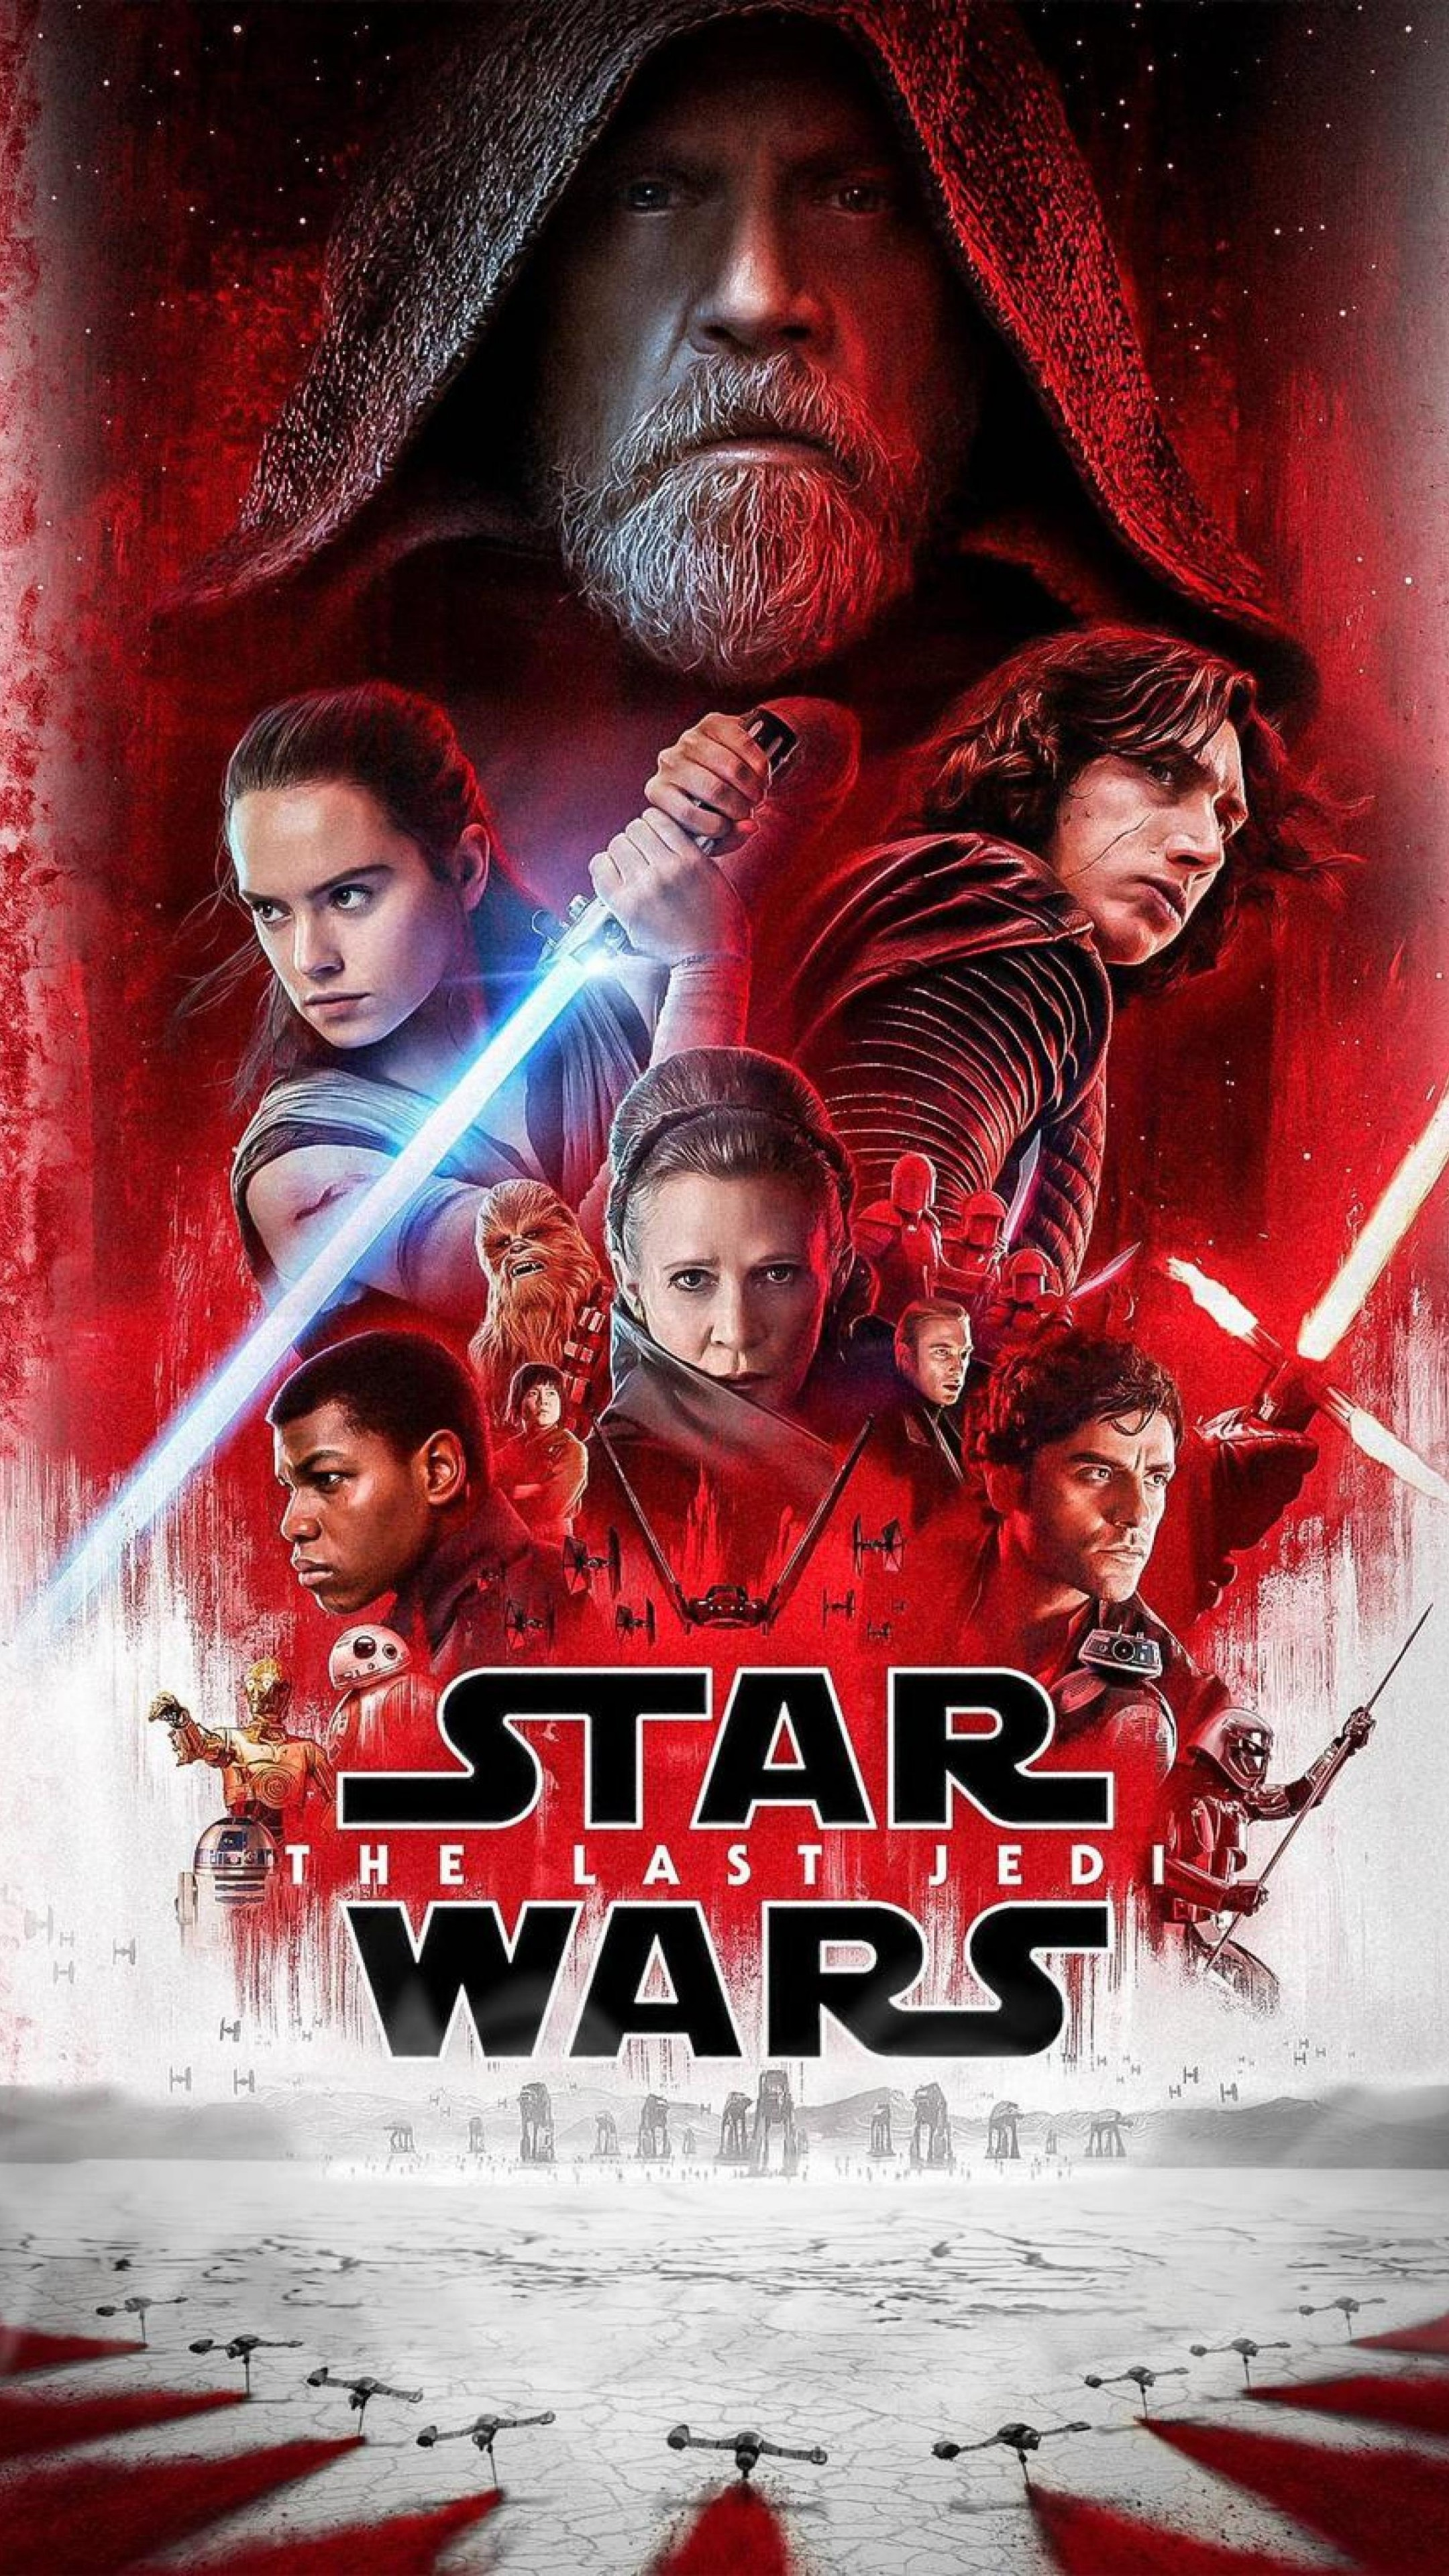 Wallpaper Star Wars The Last Jedi Daisy Ridley Carrie Fisher